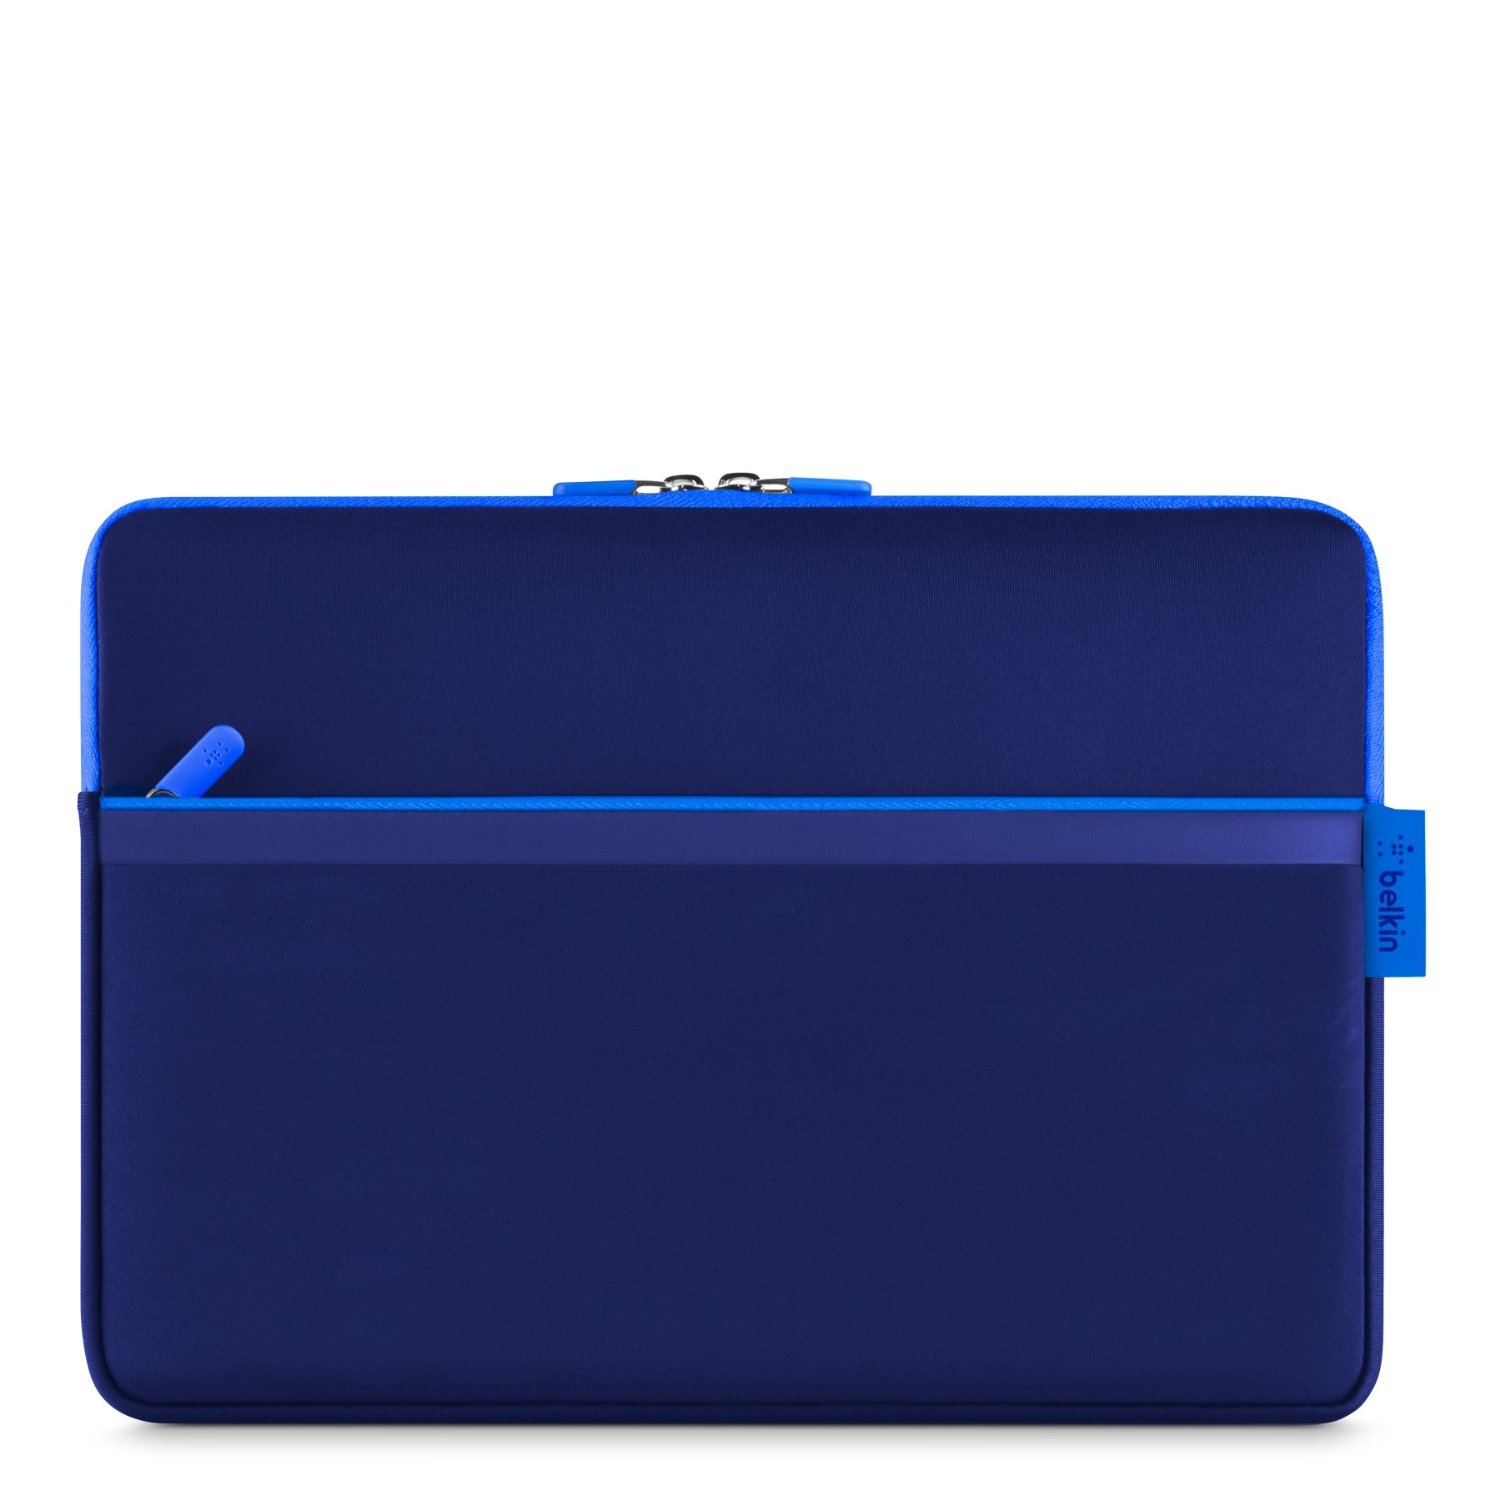 BELKIN SLEEVE FOR MICROSOFT SURFACE PRO 3